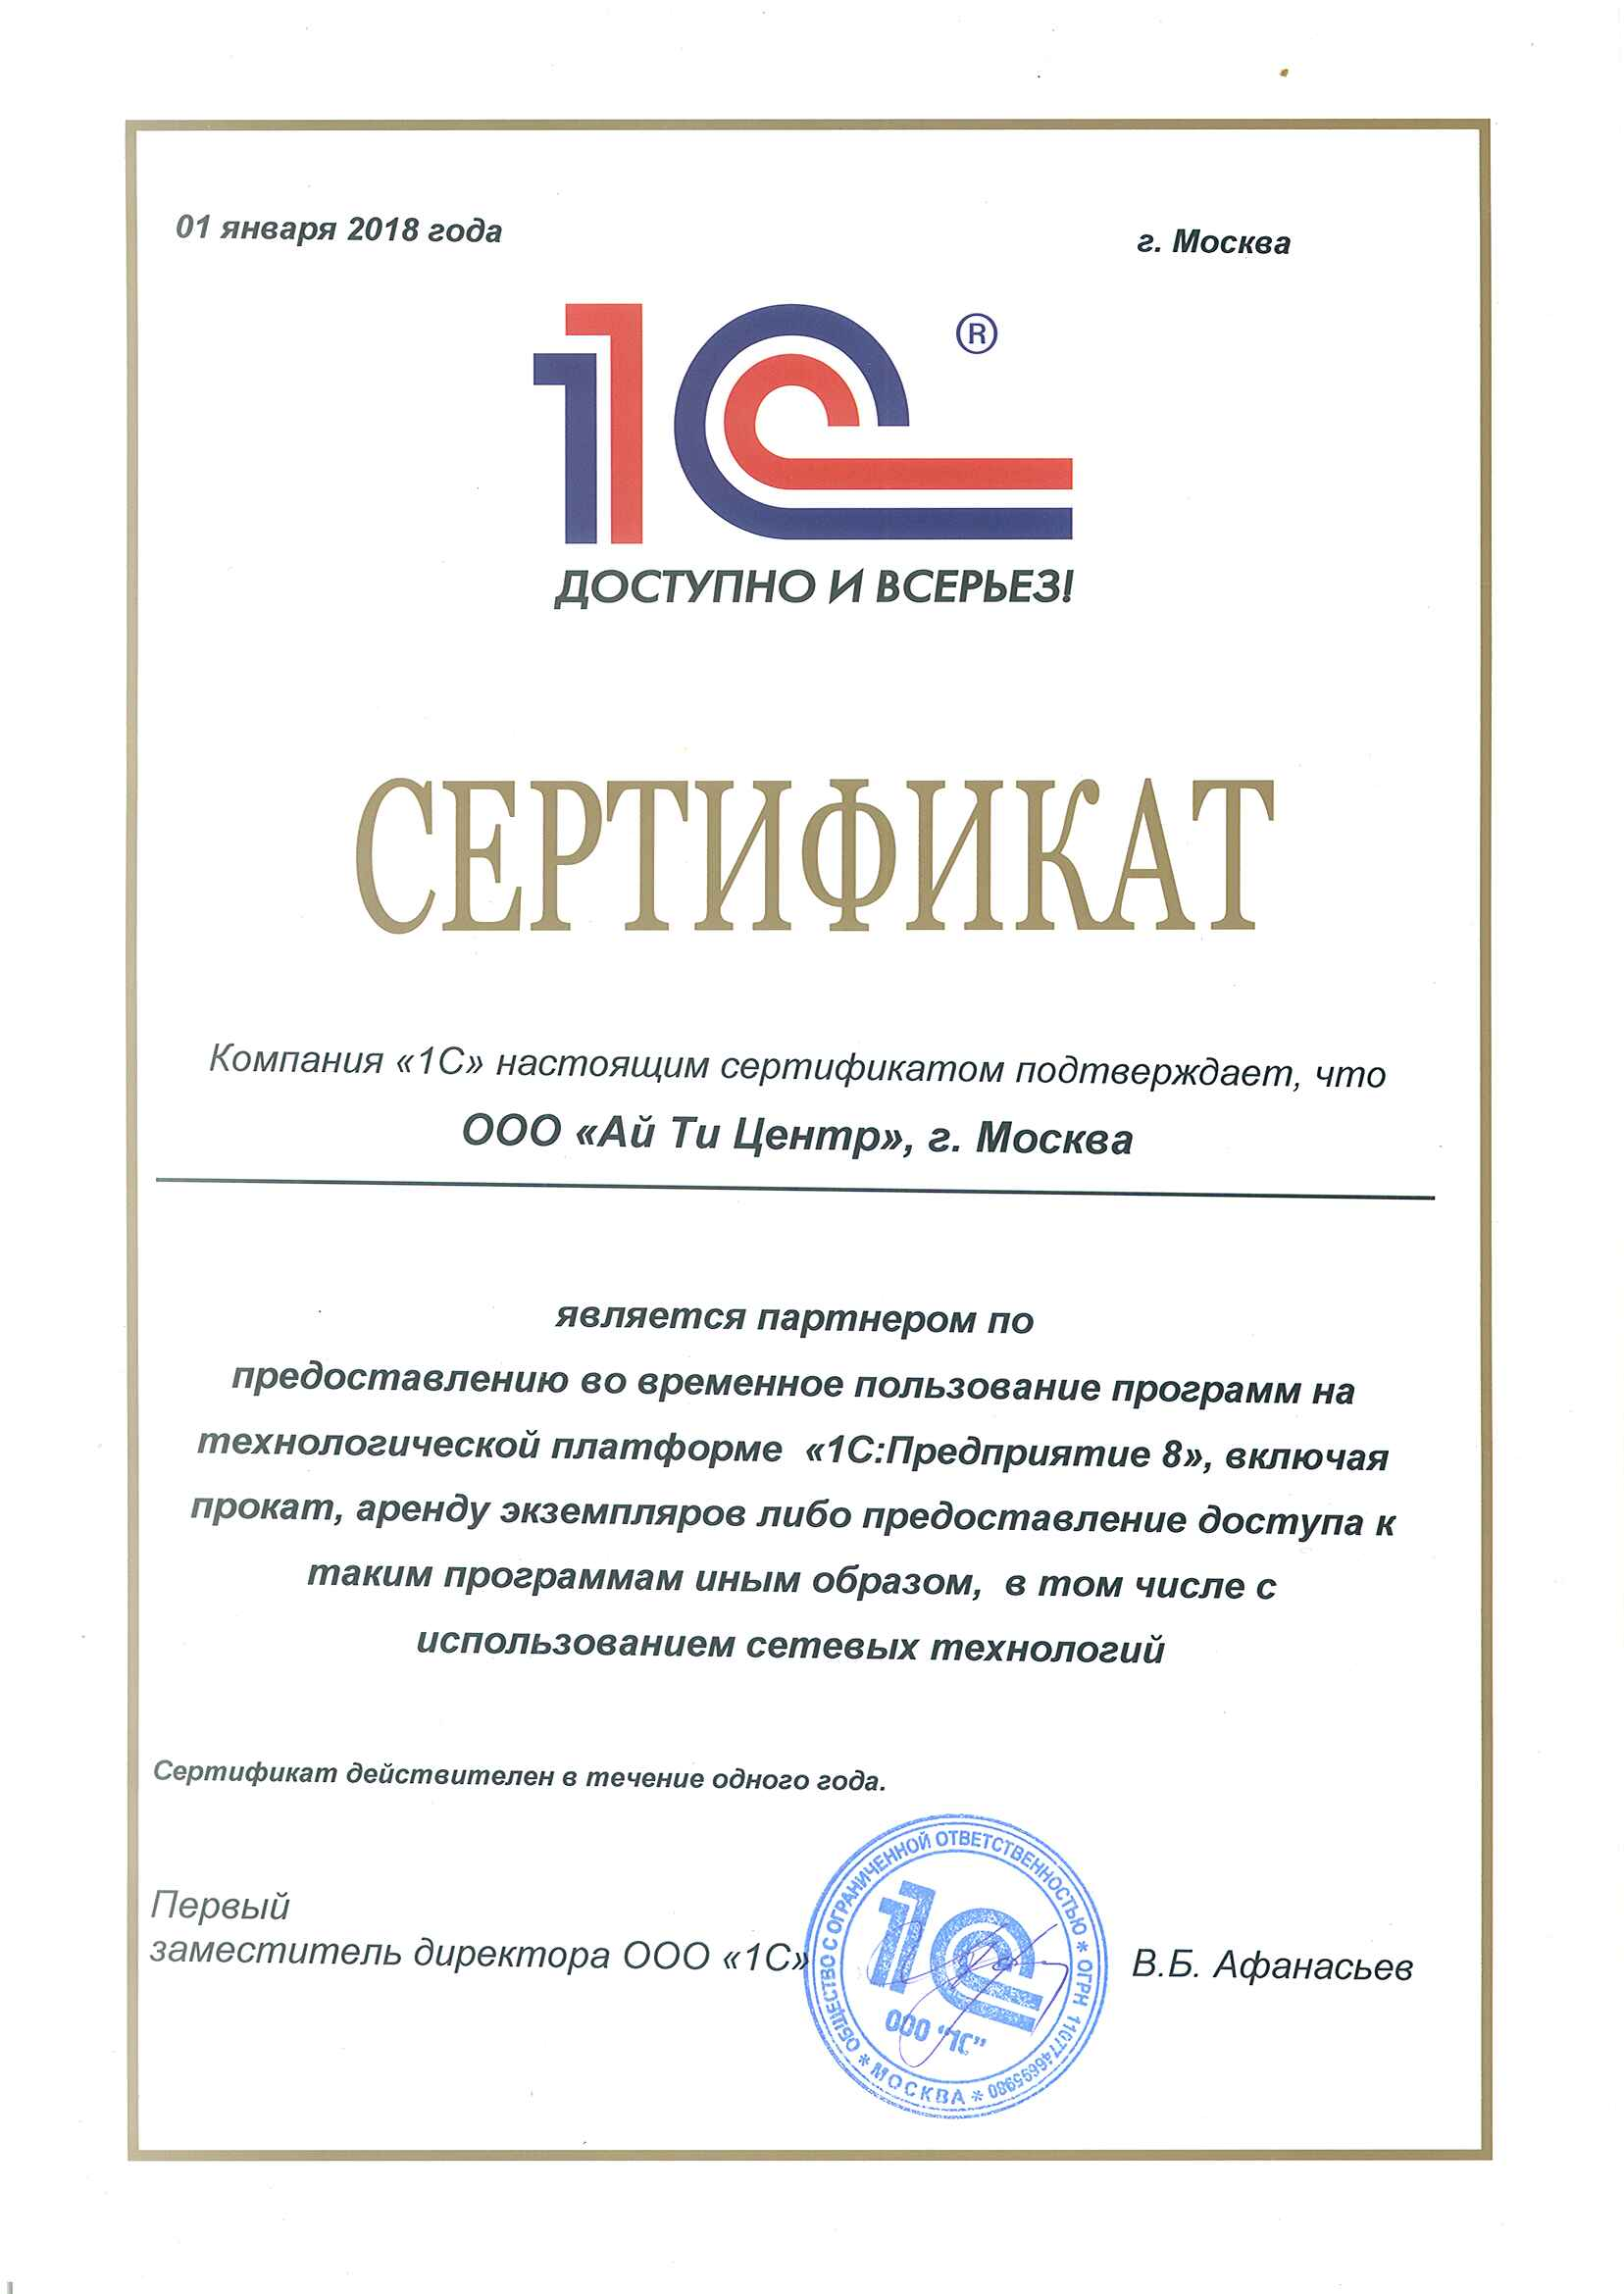 valid 1c certificate for 2018 2018 год